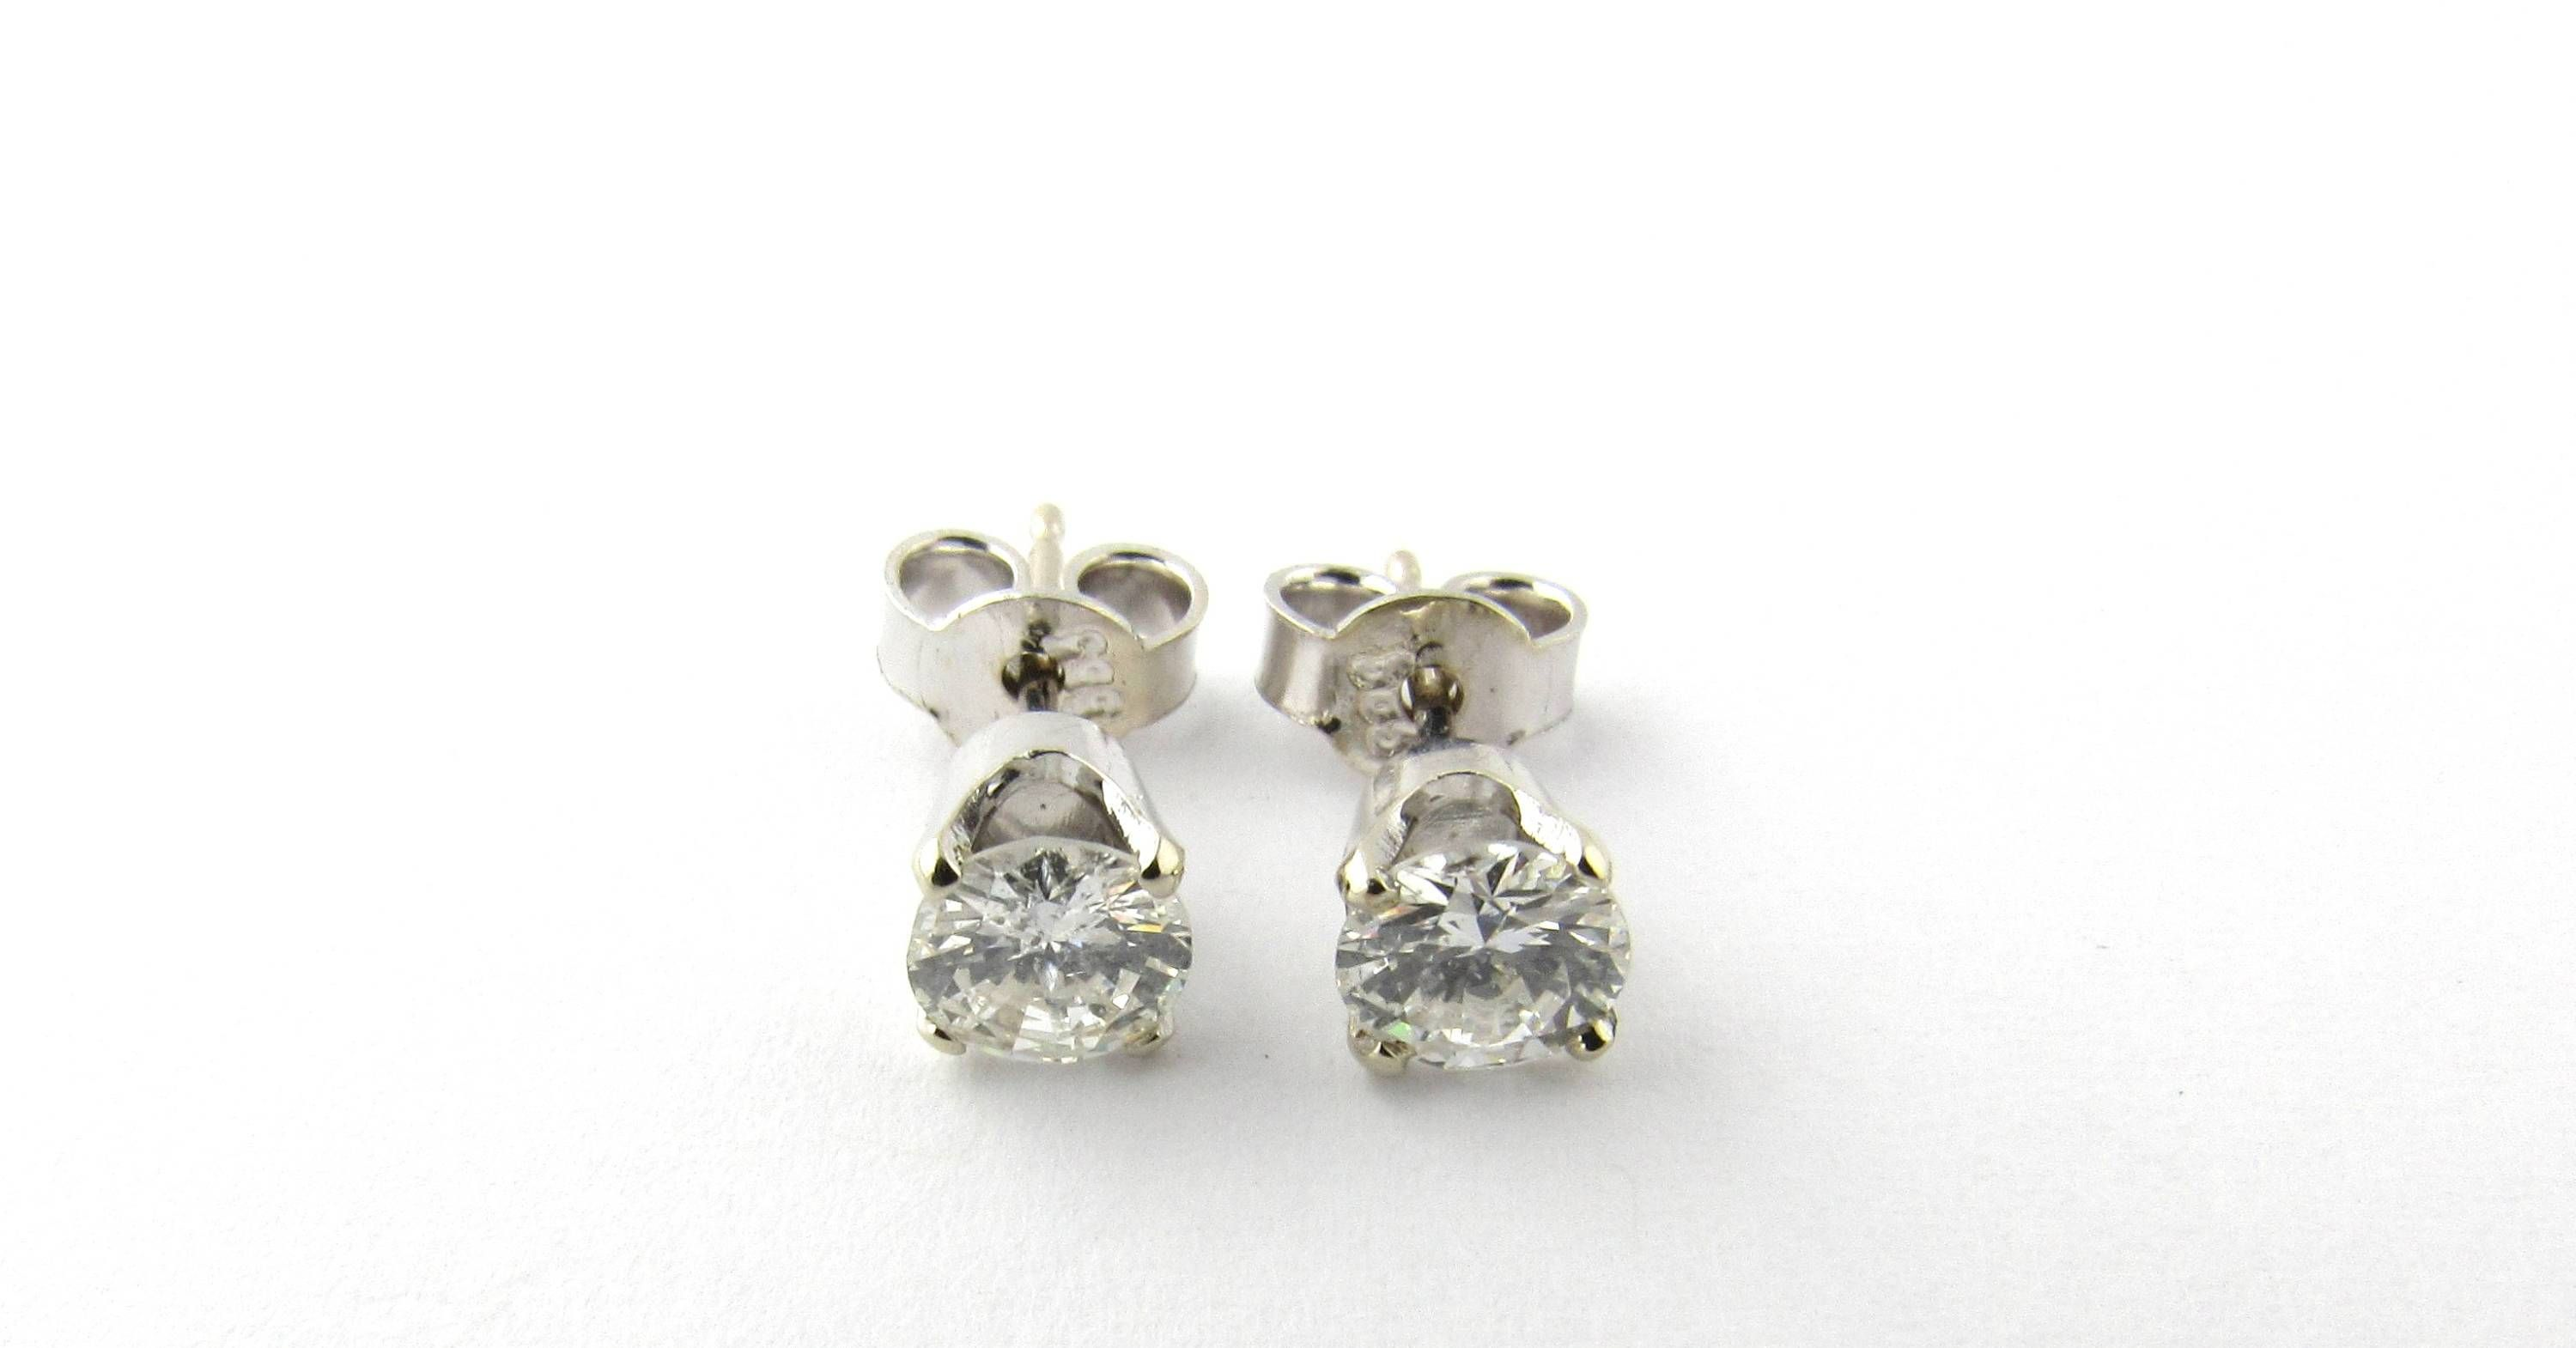 smith earrings platinum haan stud lohmeyer tarr diamond antique diane pin